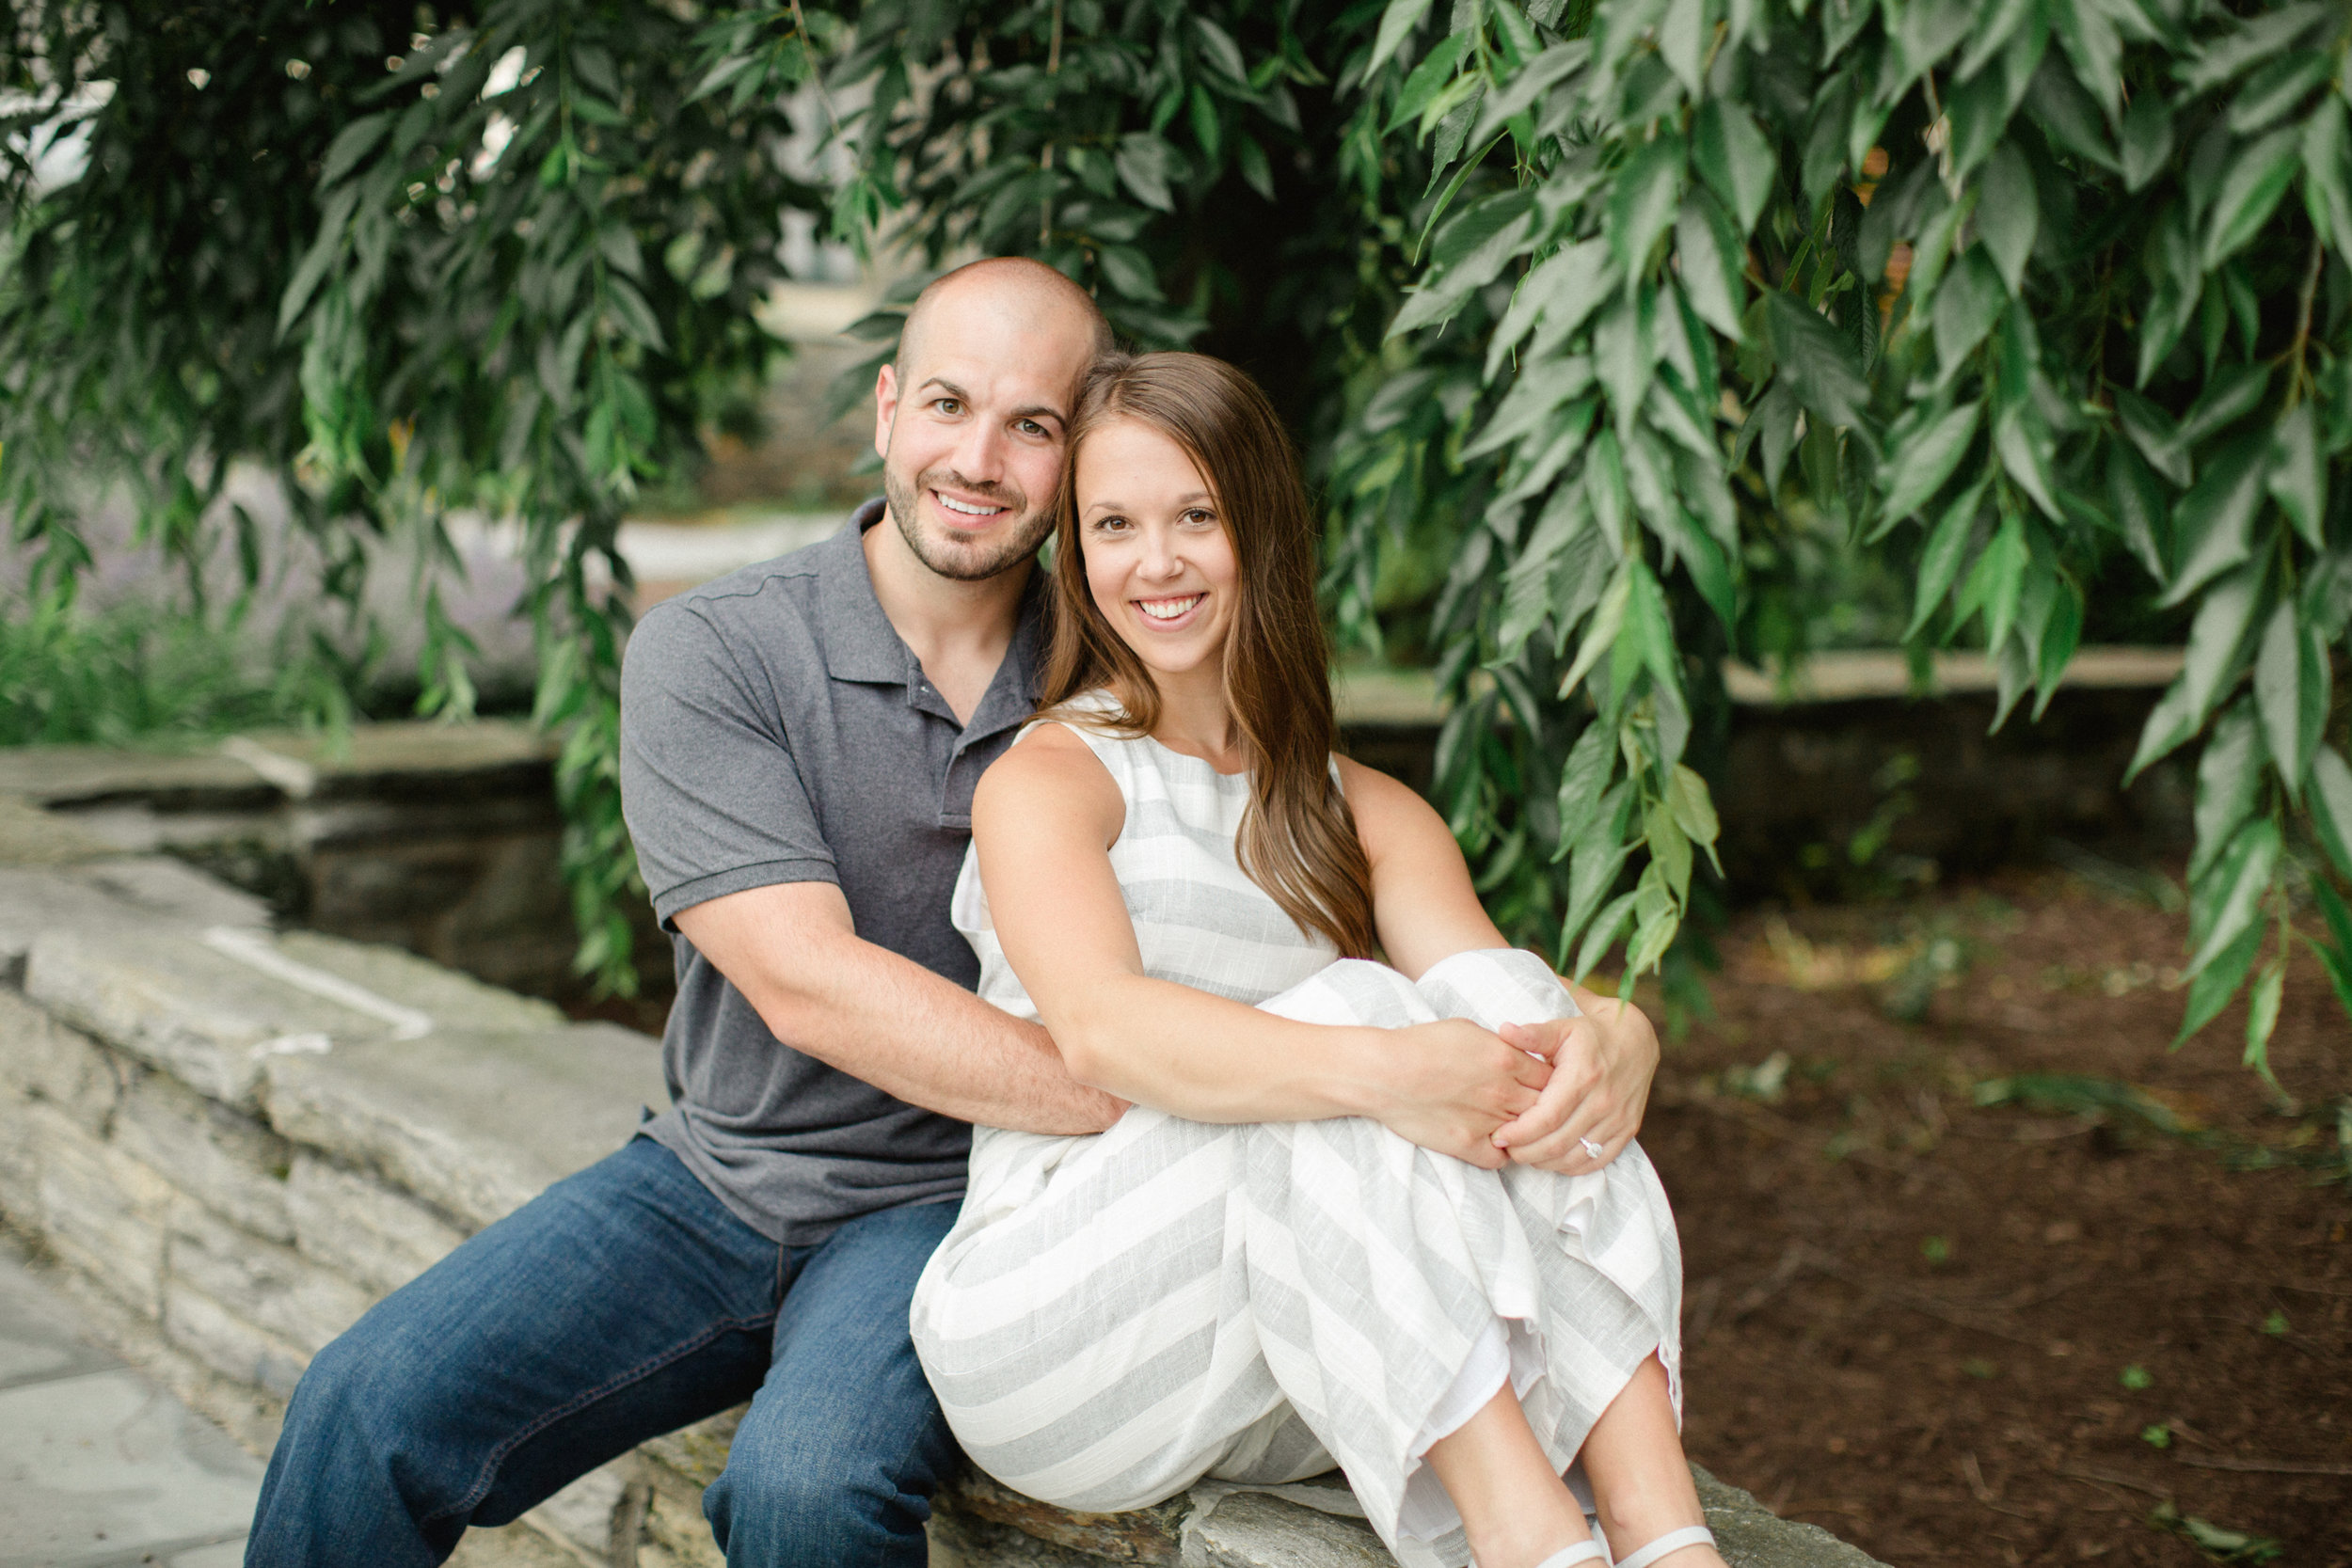 University of Scranton Engagement Session Photos_JDP-46.jpg